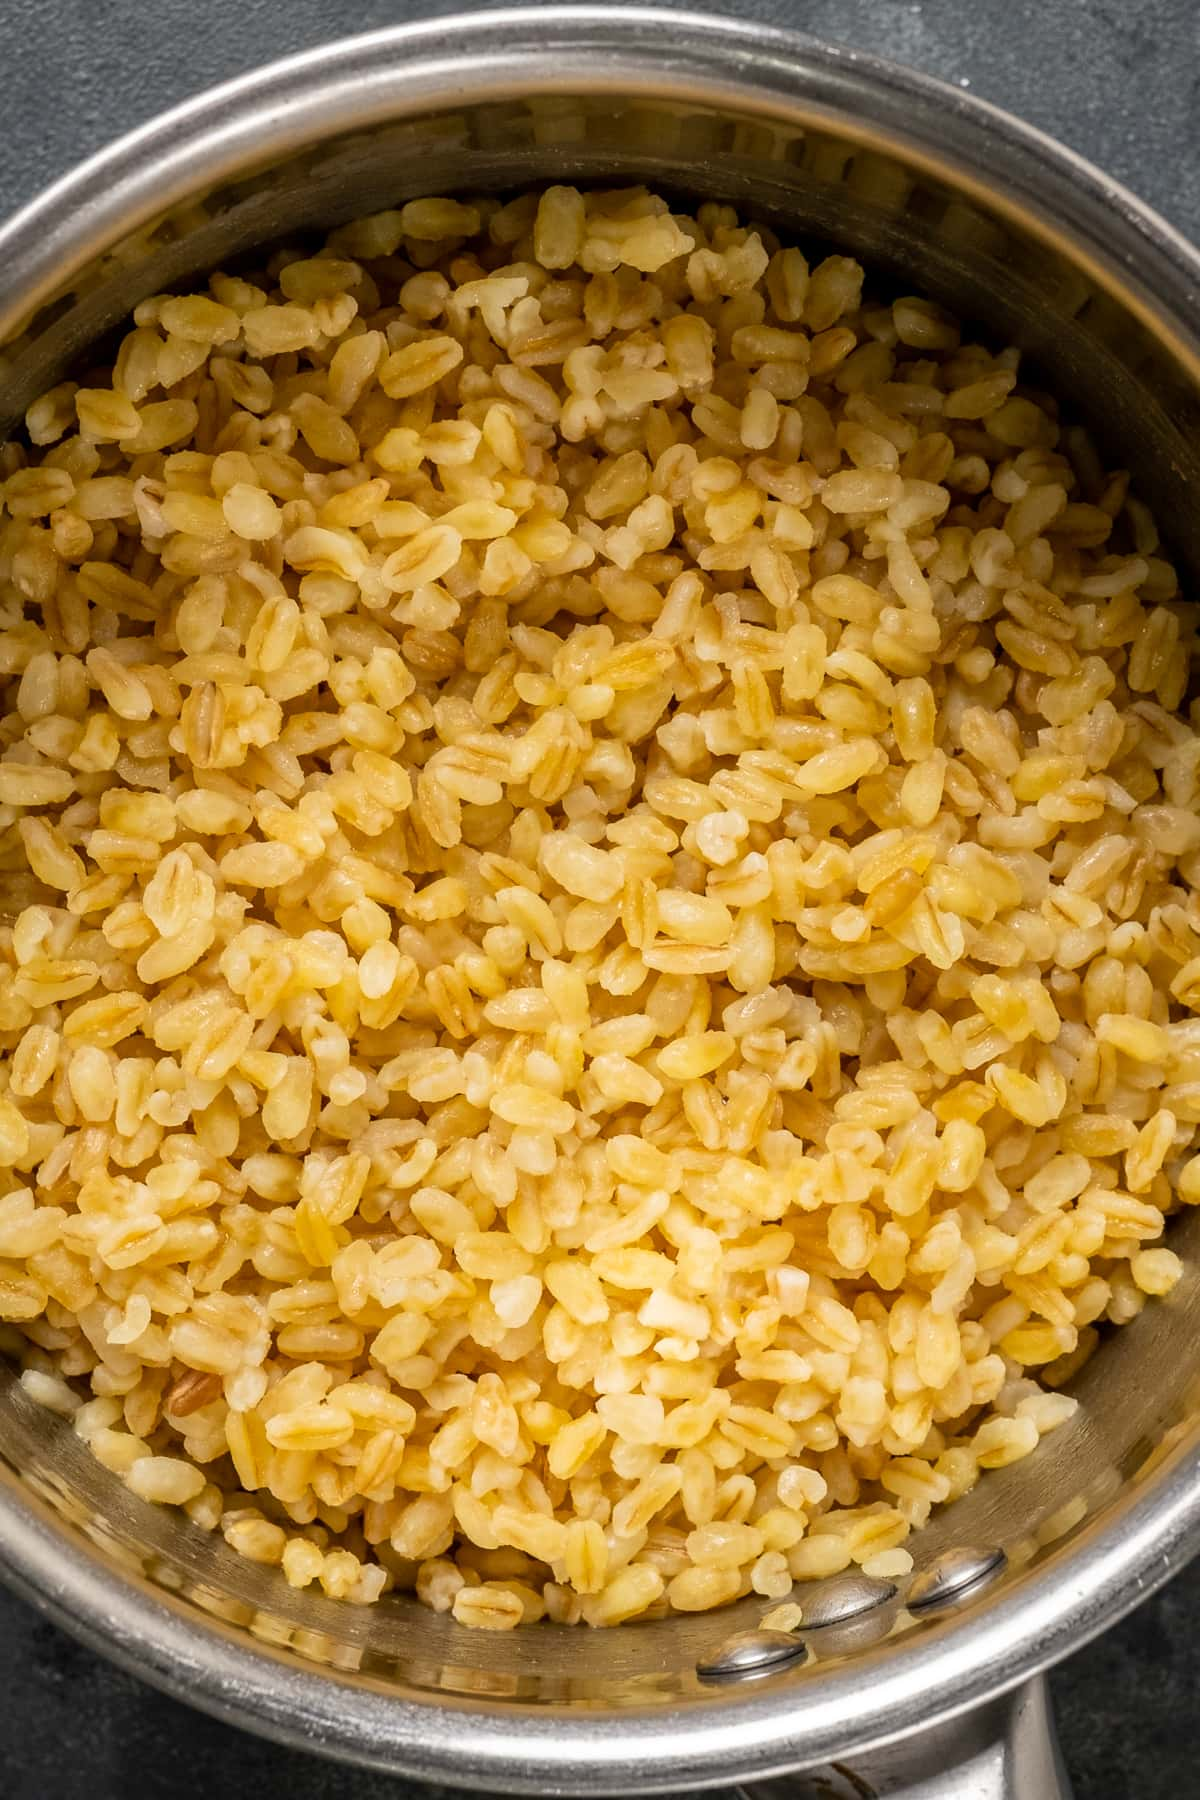 Very coarse bulgur in a saucepan after cooked.